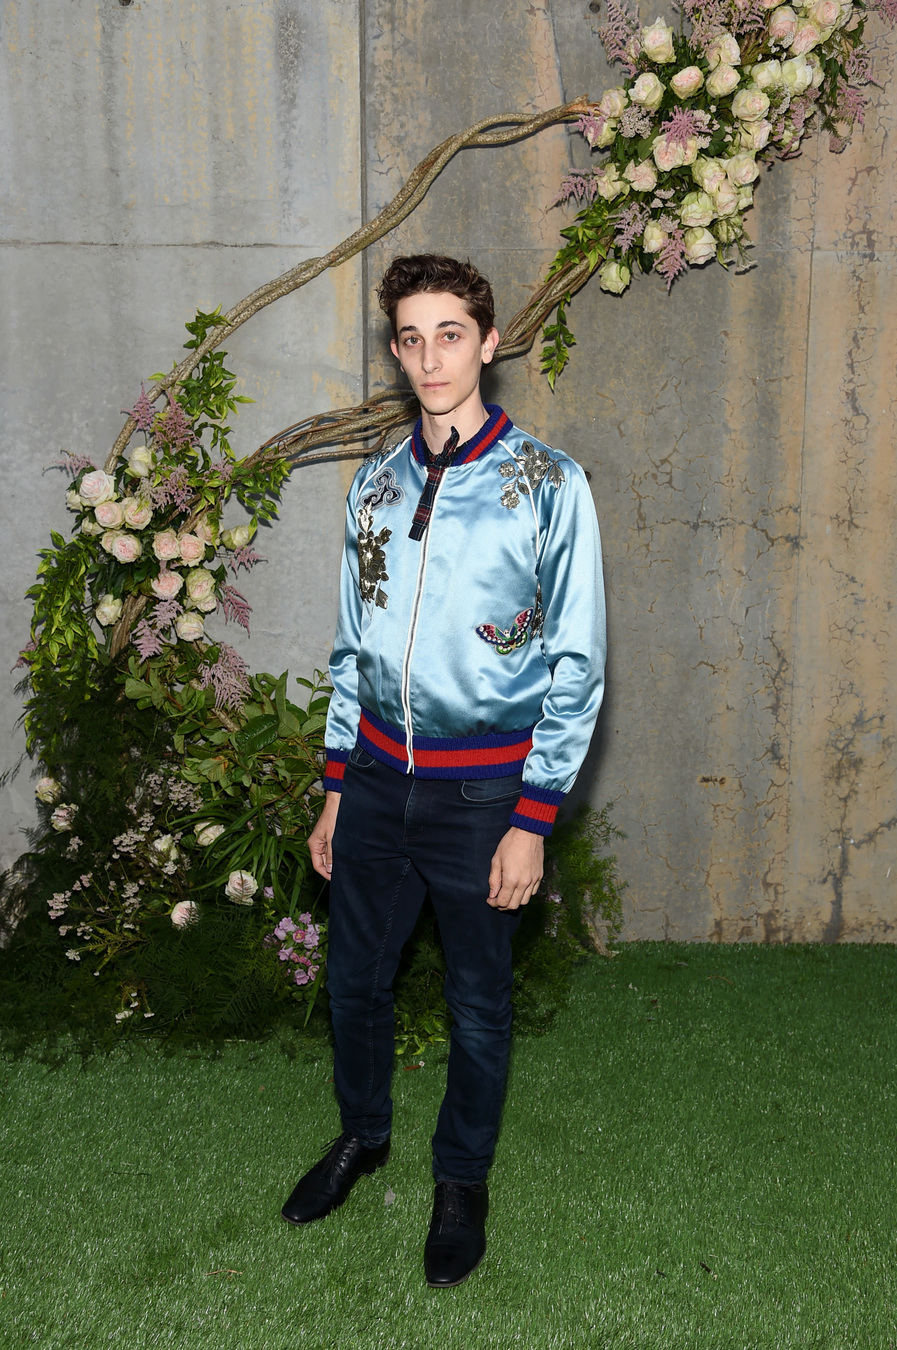 NEW YORK, NY - MAY 02: Jonah Reider attends the Gucci Bloom Fragrance Launch at MoMA PS.1 on May 2, 2017 in New York City. (Photo by Jamie McCarthy/Getty Images for Gucci)